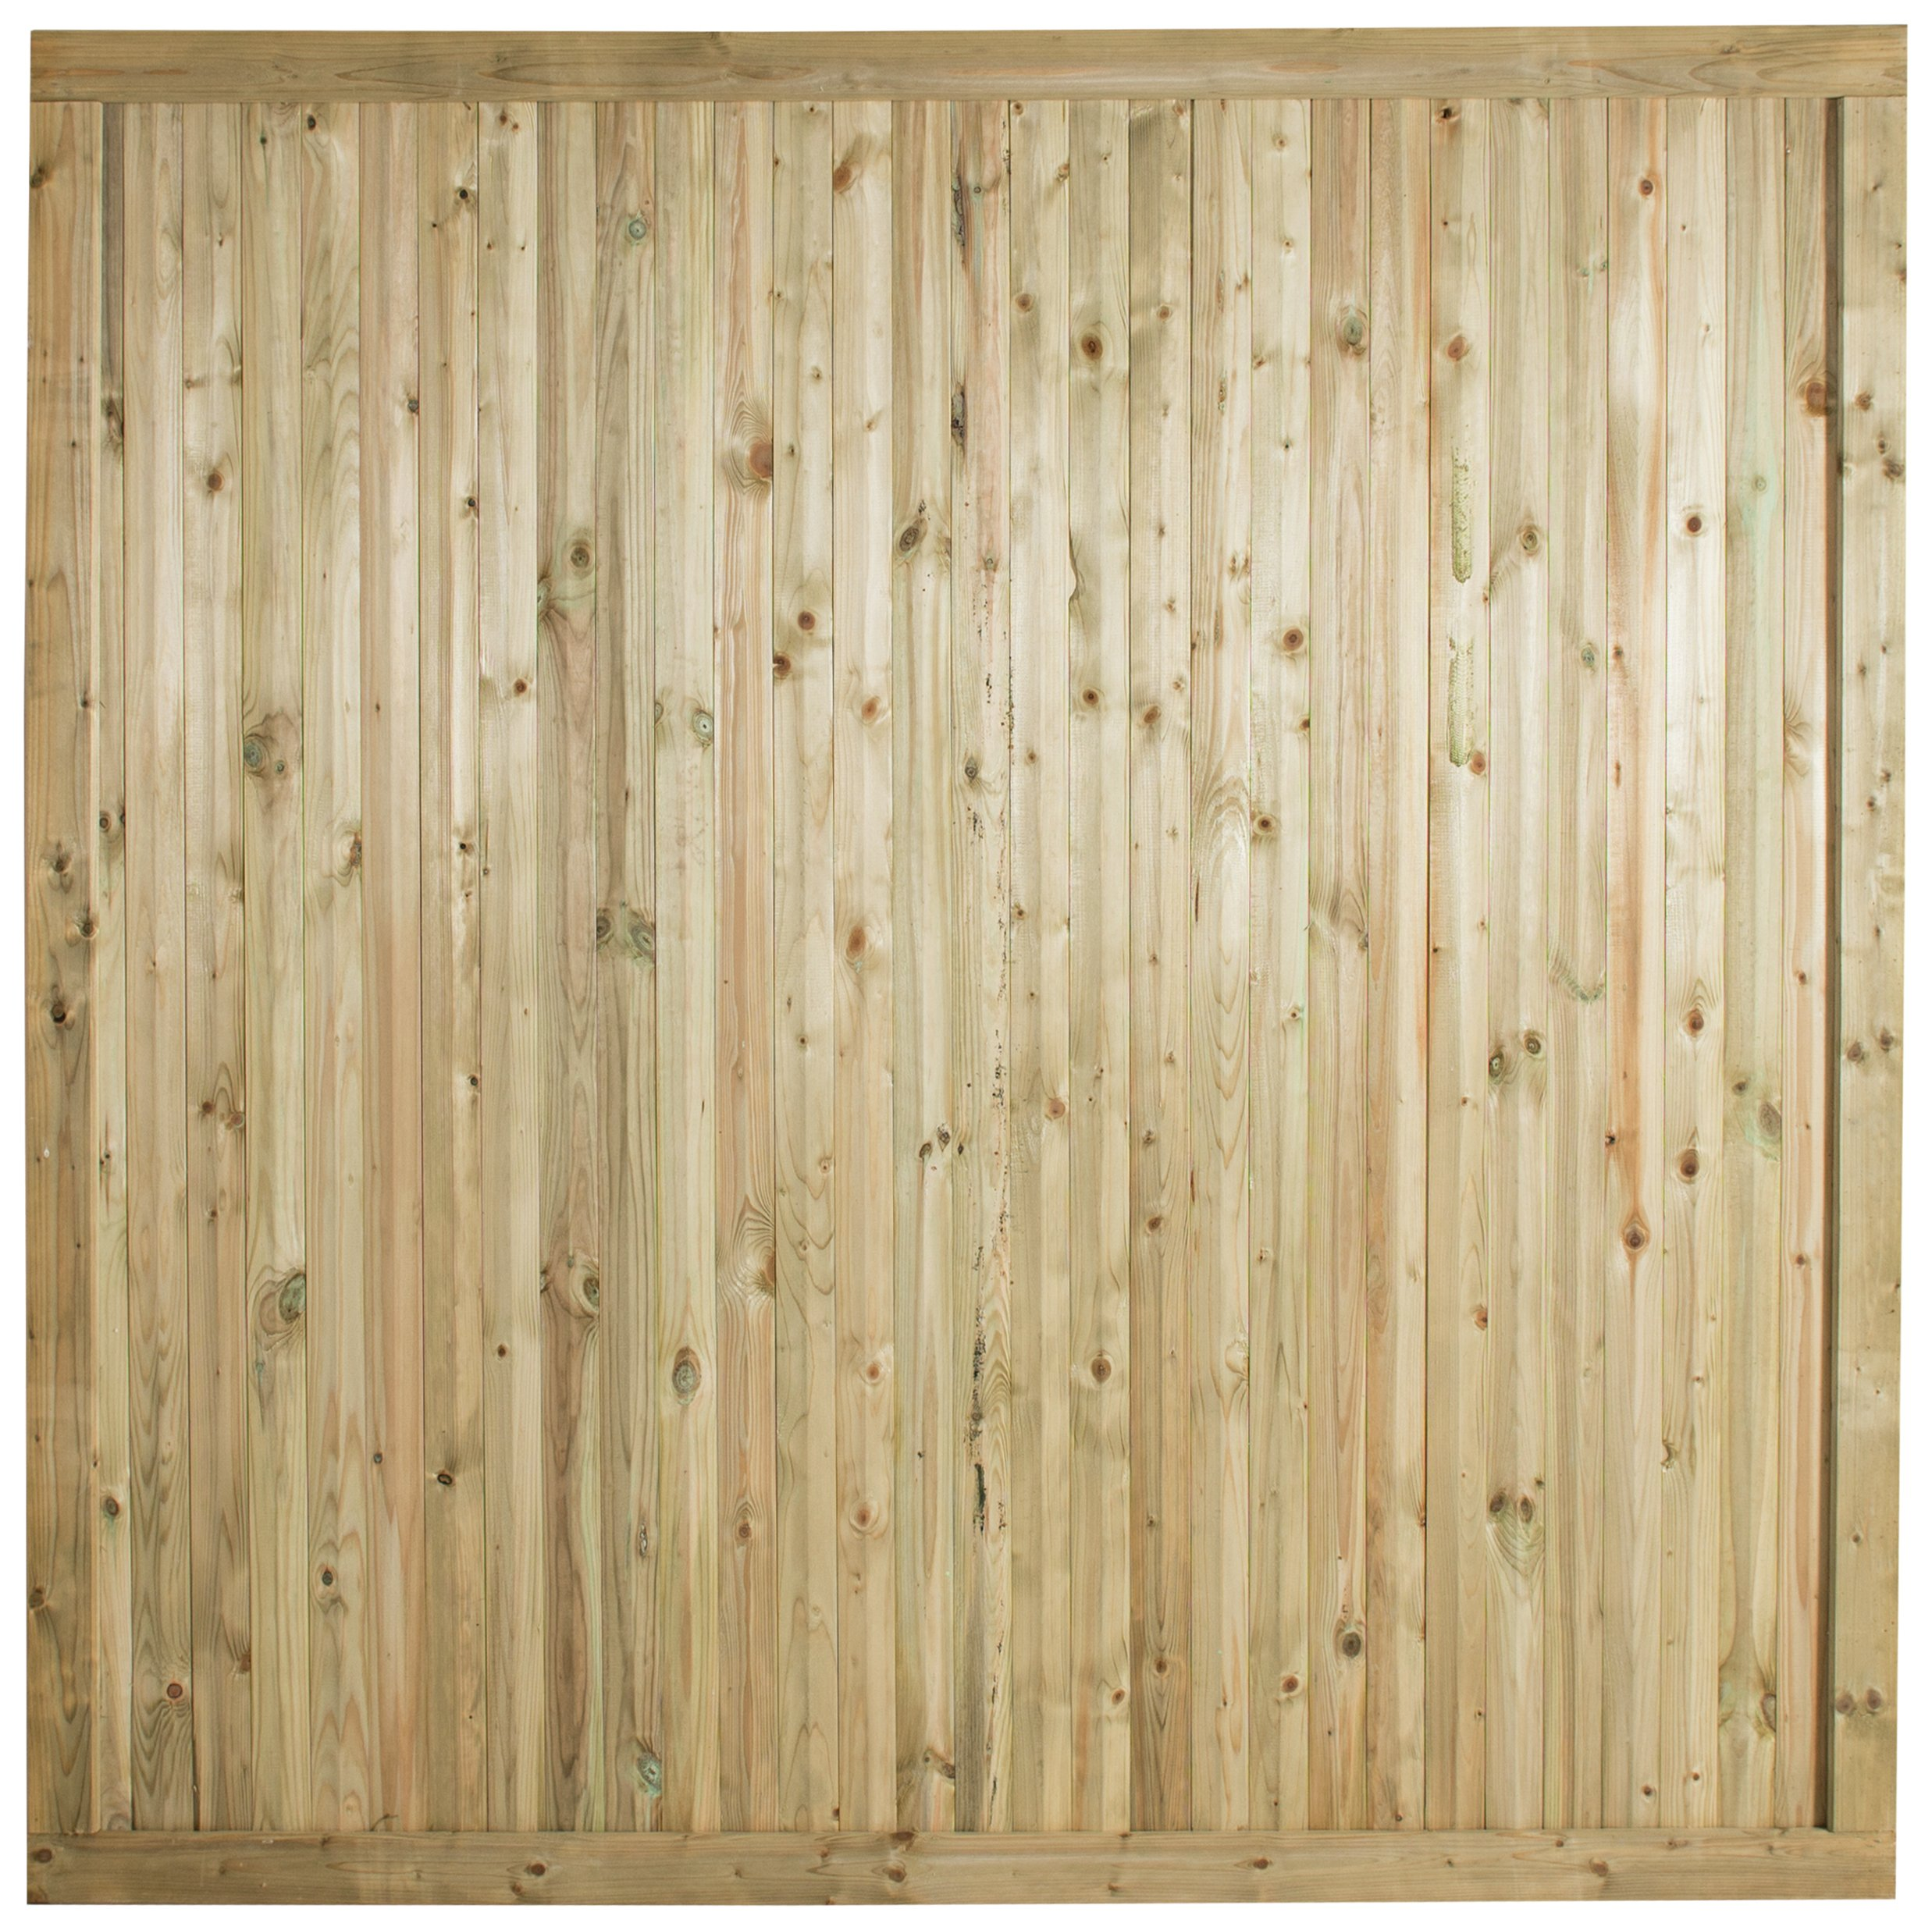 Forest Decibel Noise Reduction 6ft Fence Panel - Pack of 5